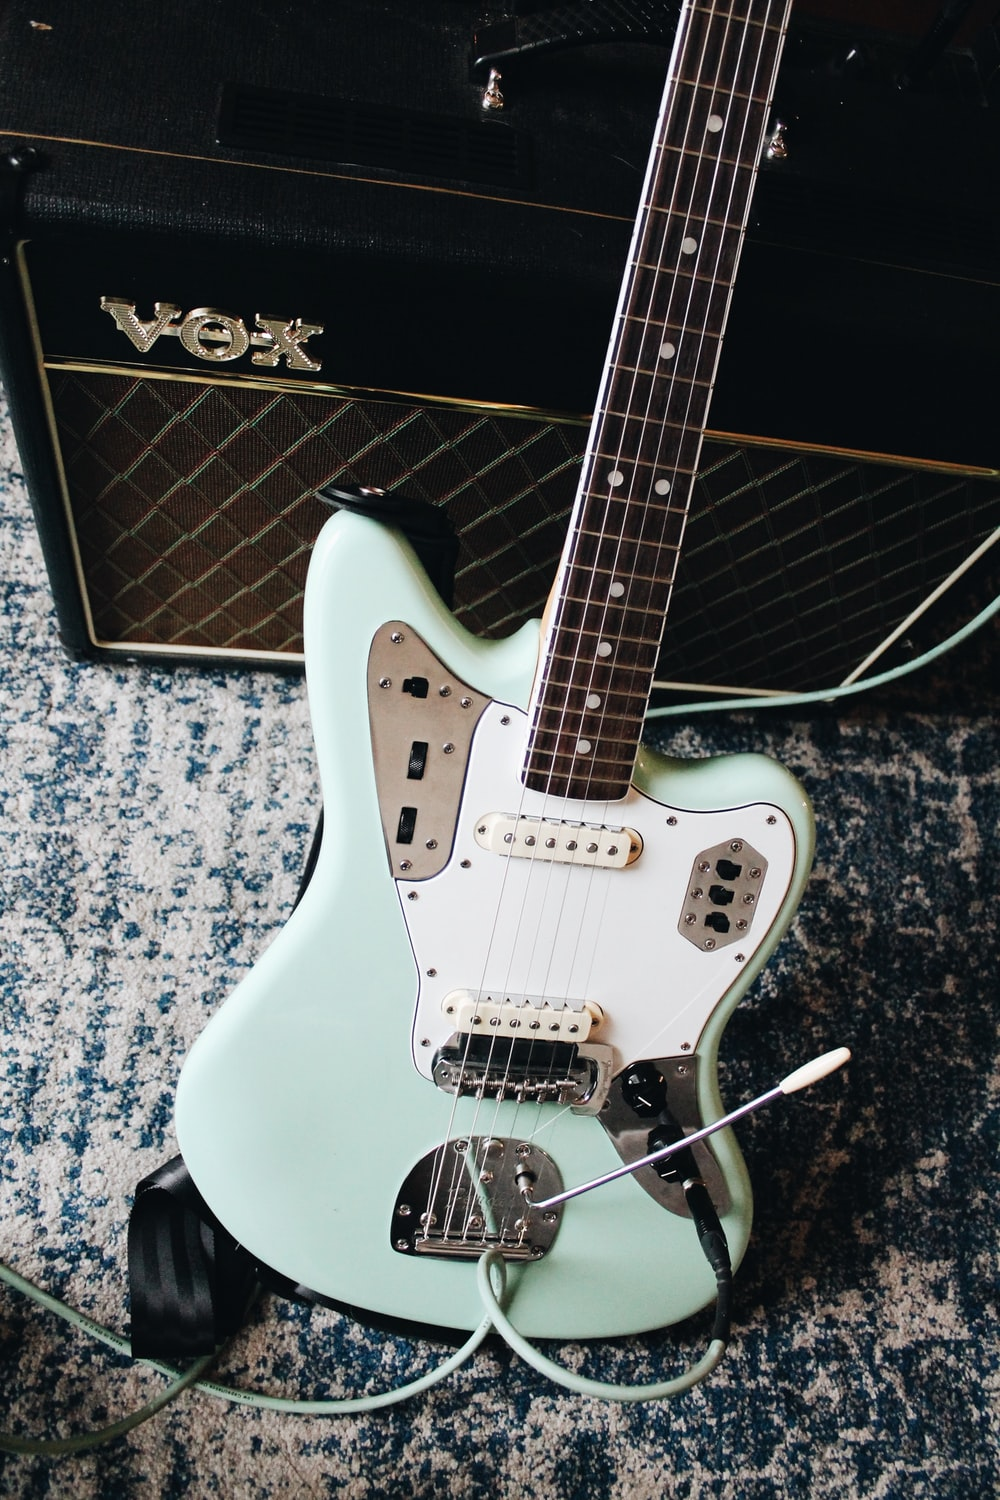 teal and white electric guitar near amplifier